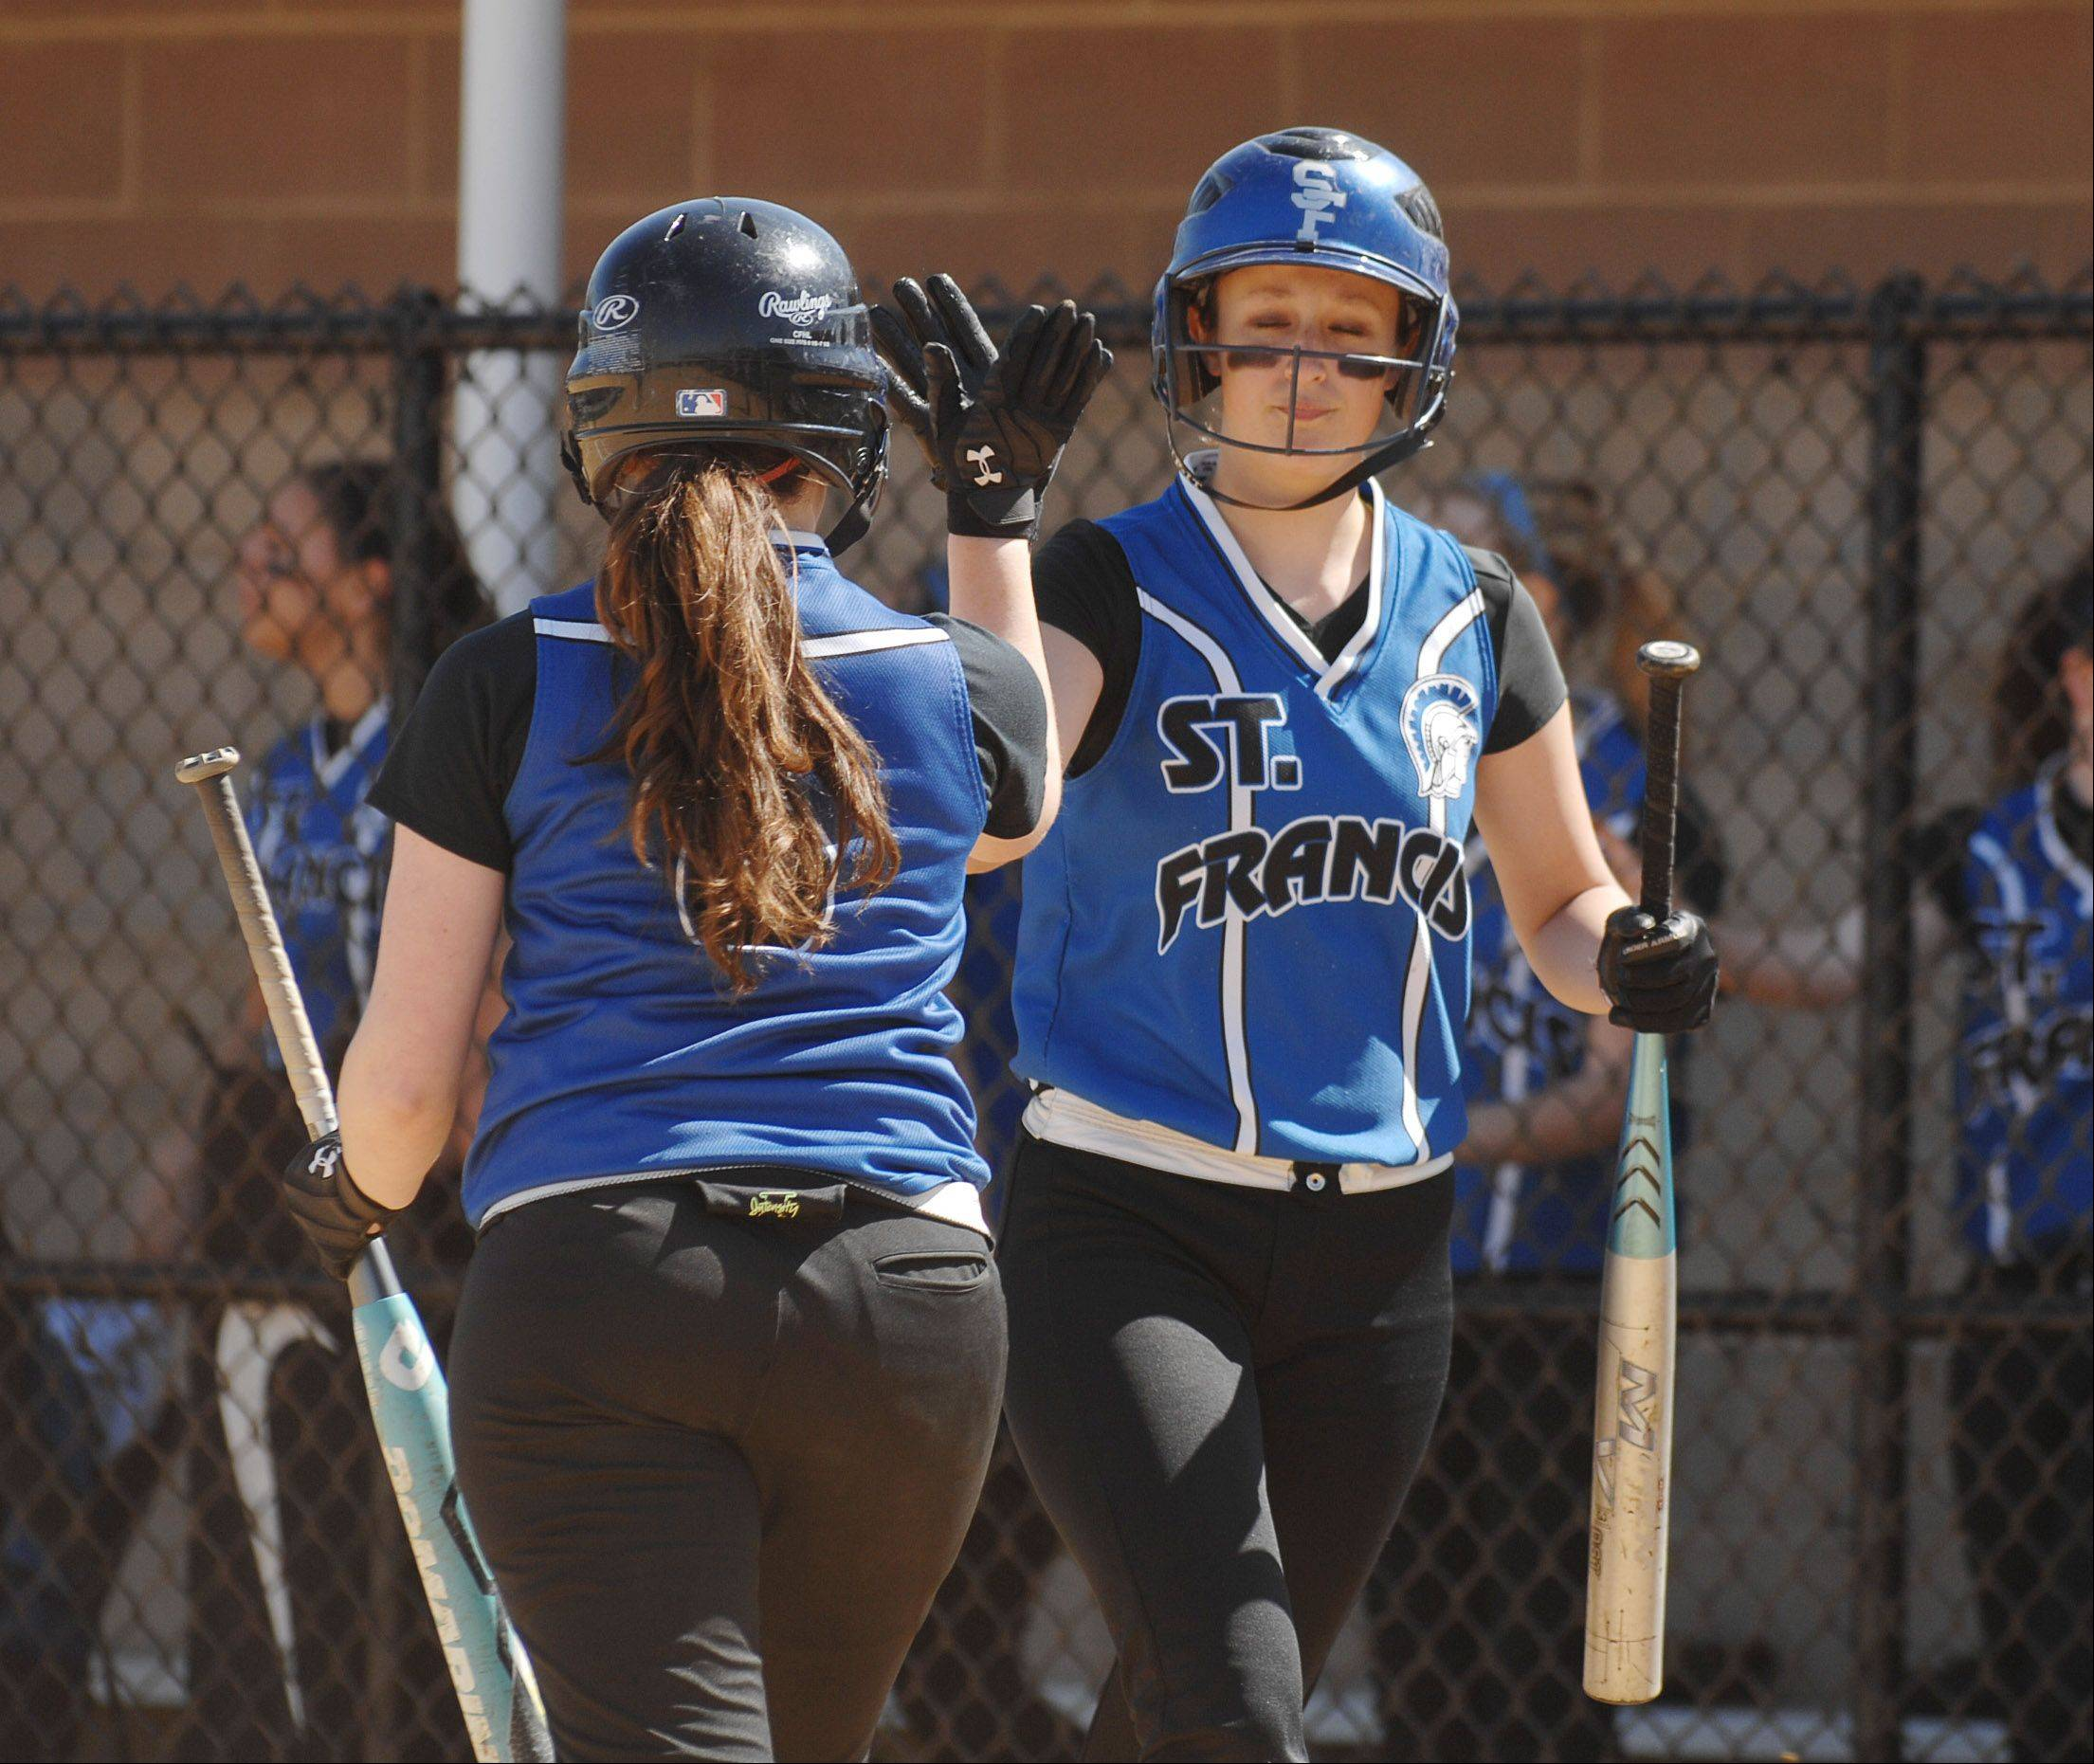 Blaine Carragher of St. Francis,left, and Maggie Remus do a high five after Carragher scored during the St. Francis at Addison Trail softball game Wednesday.